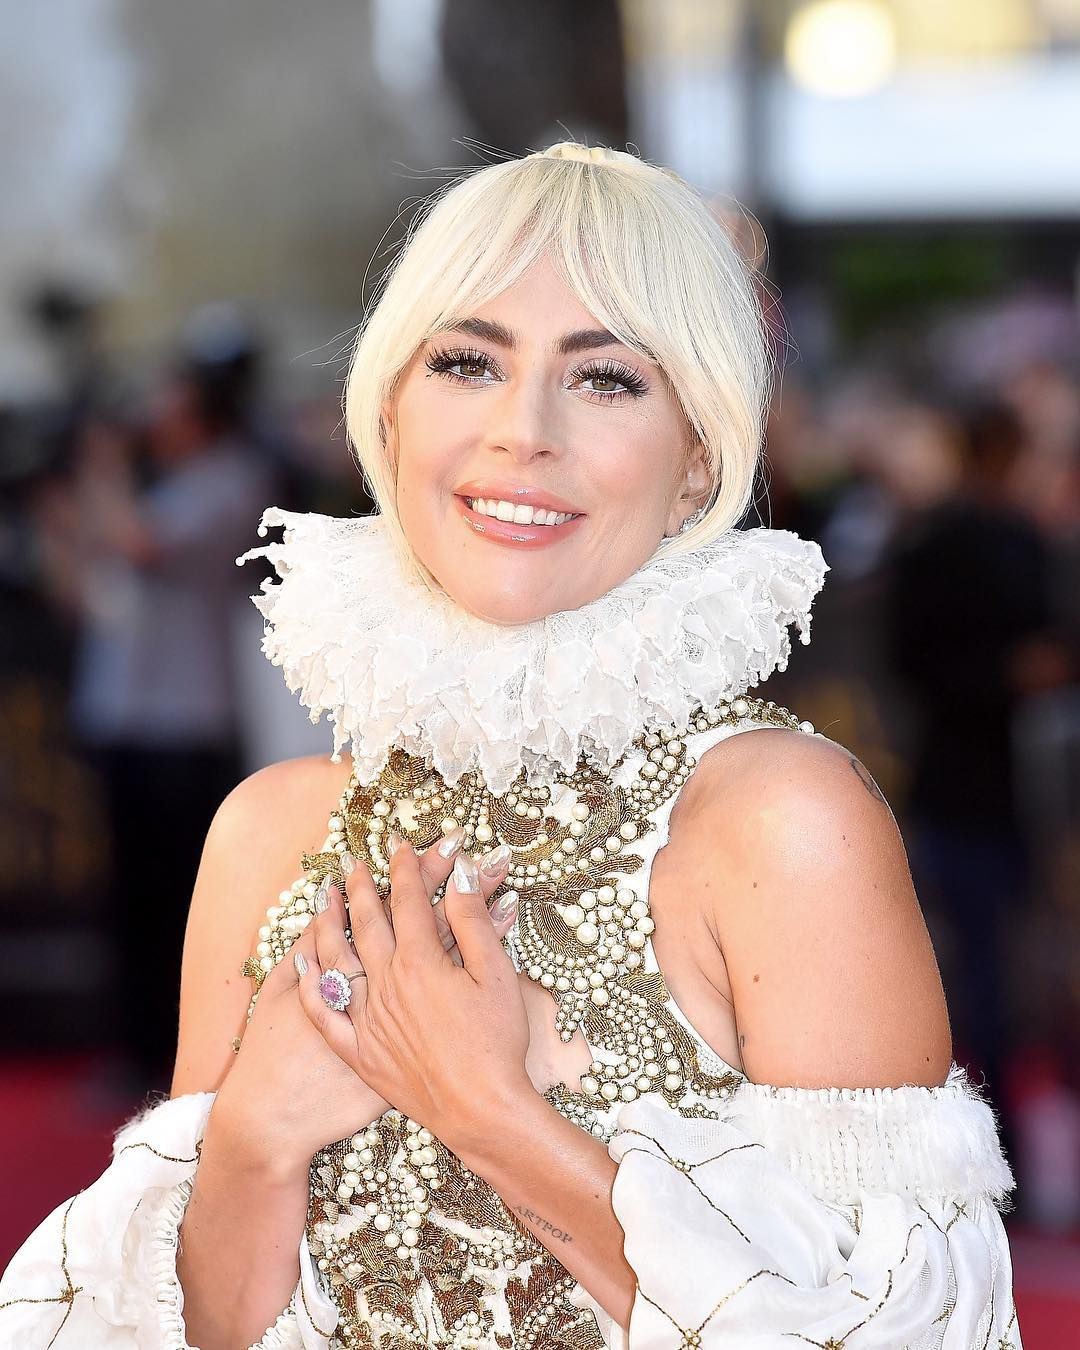 The 2 Hack Woman Gaga S Hairstylist Use To Preserve Her Updos In Place Beauty Hacks Check More At Https Hairfashion Tk T Lady Gaga Frisur Hochgesteckt Lady